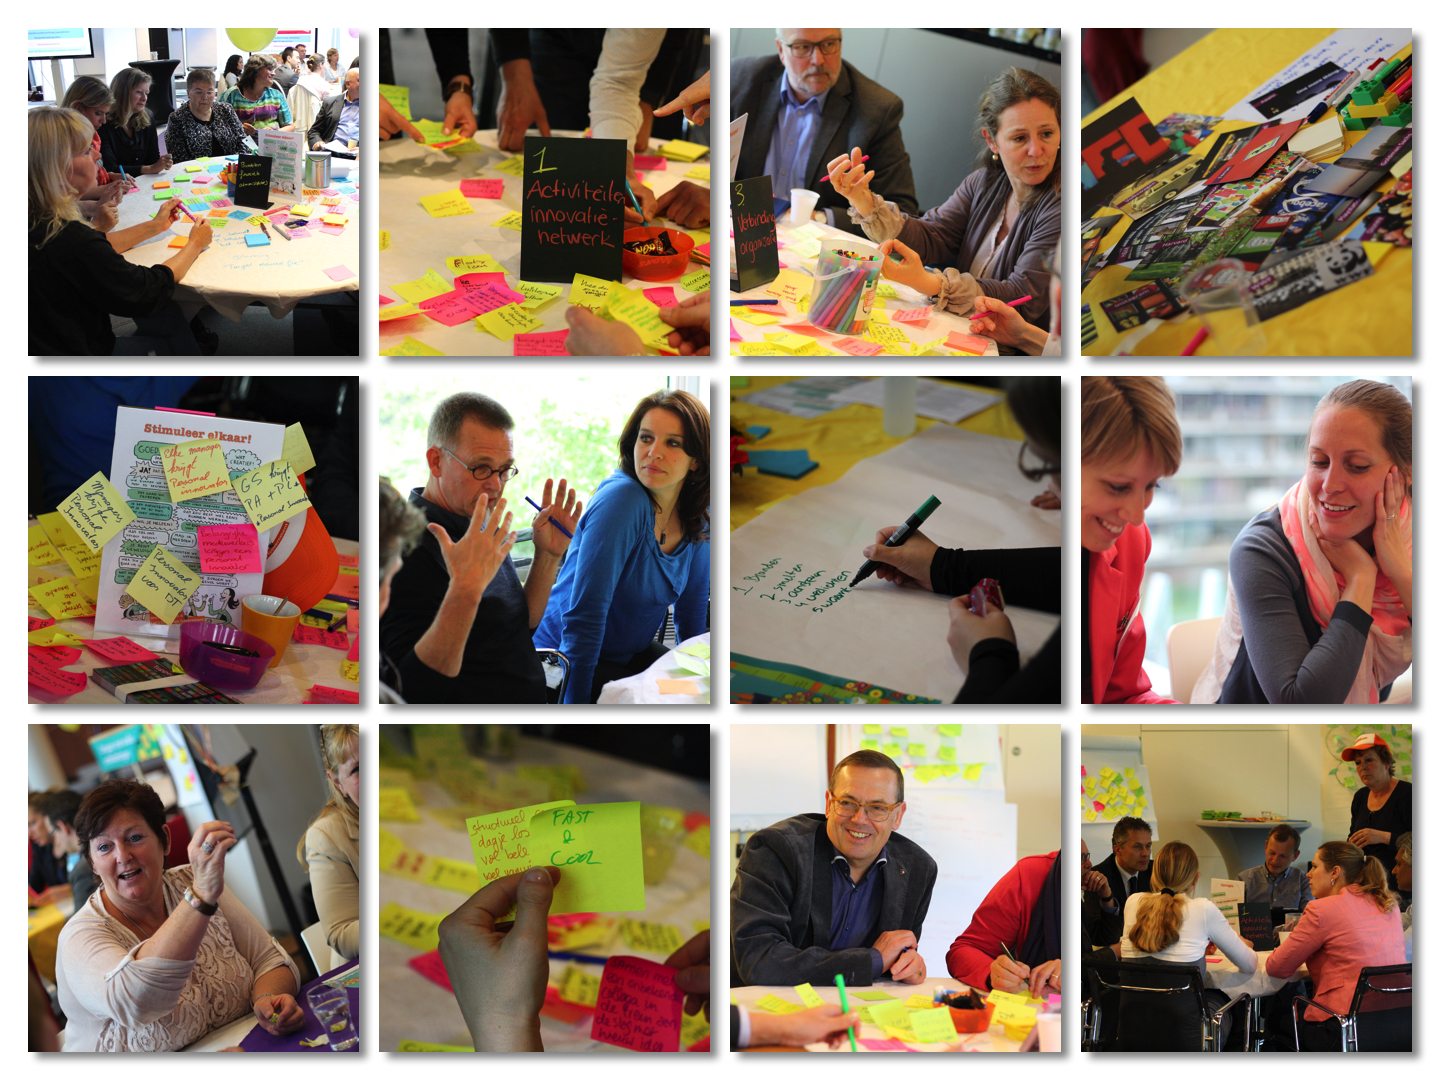 Innovatie Cafe collage